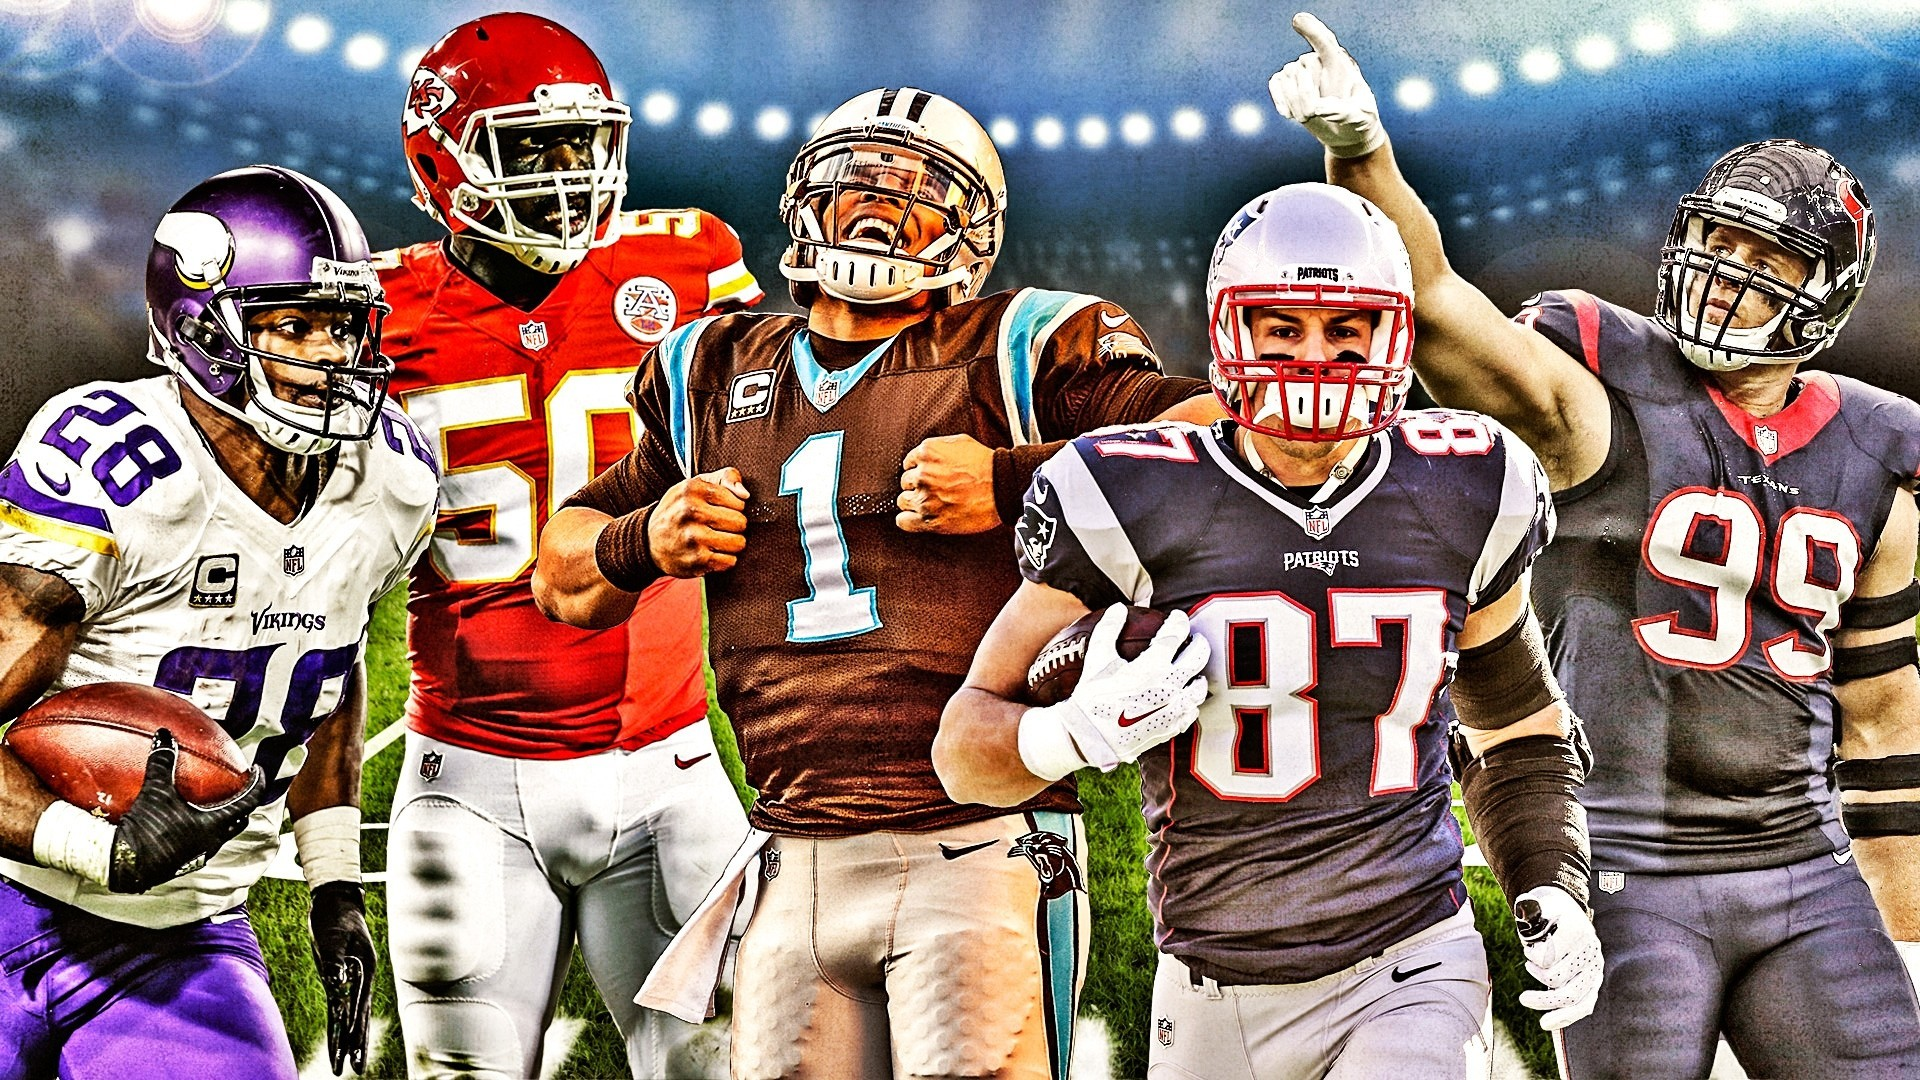 Nfl Football Players Cool 1080x1080: Cool Nfl Football Wallpapers (72+ Background Pictures